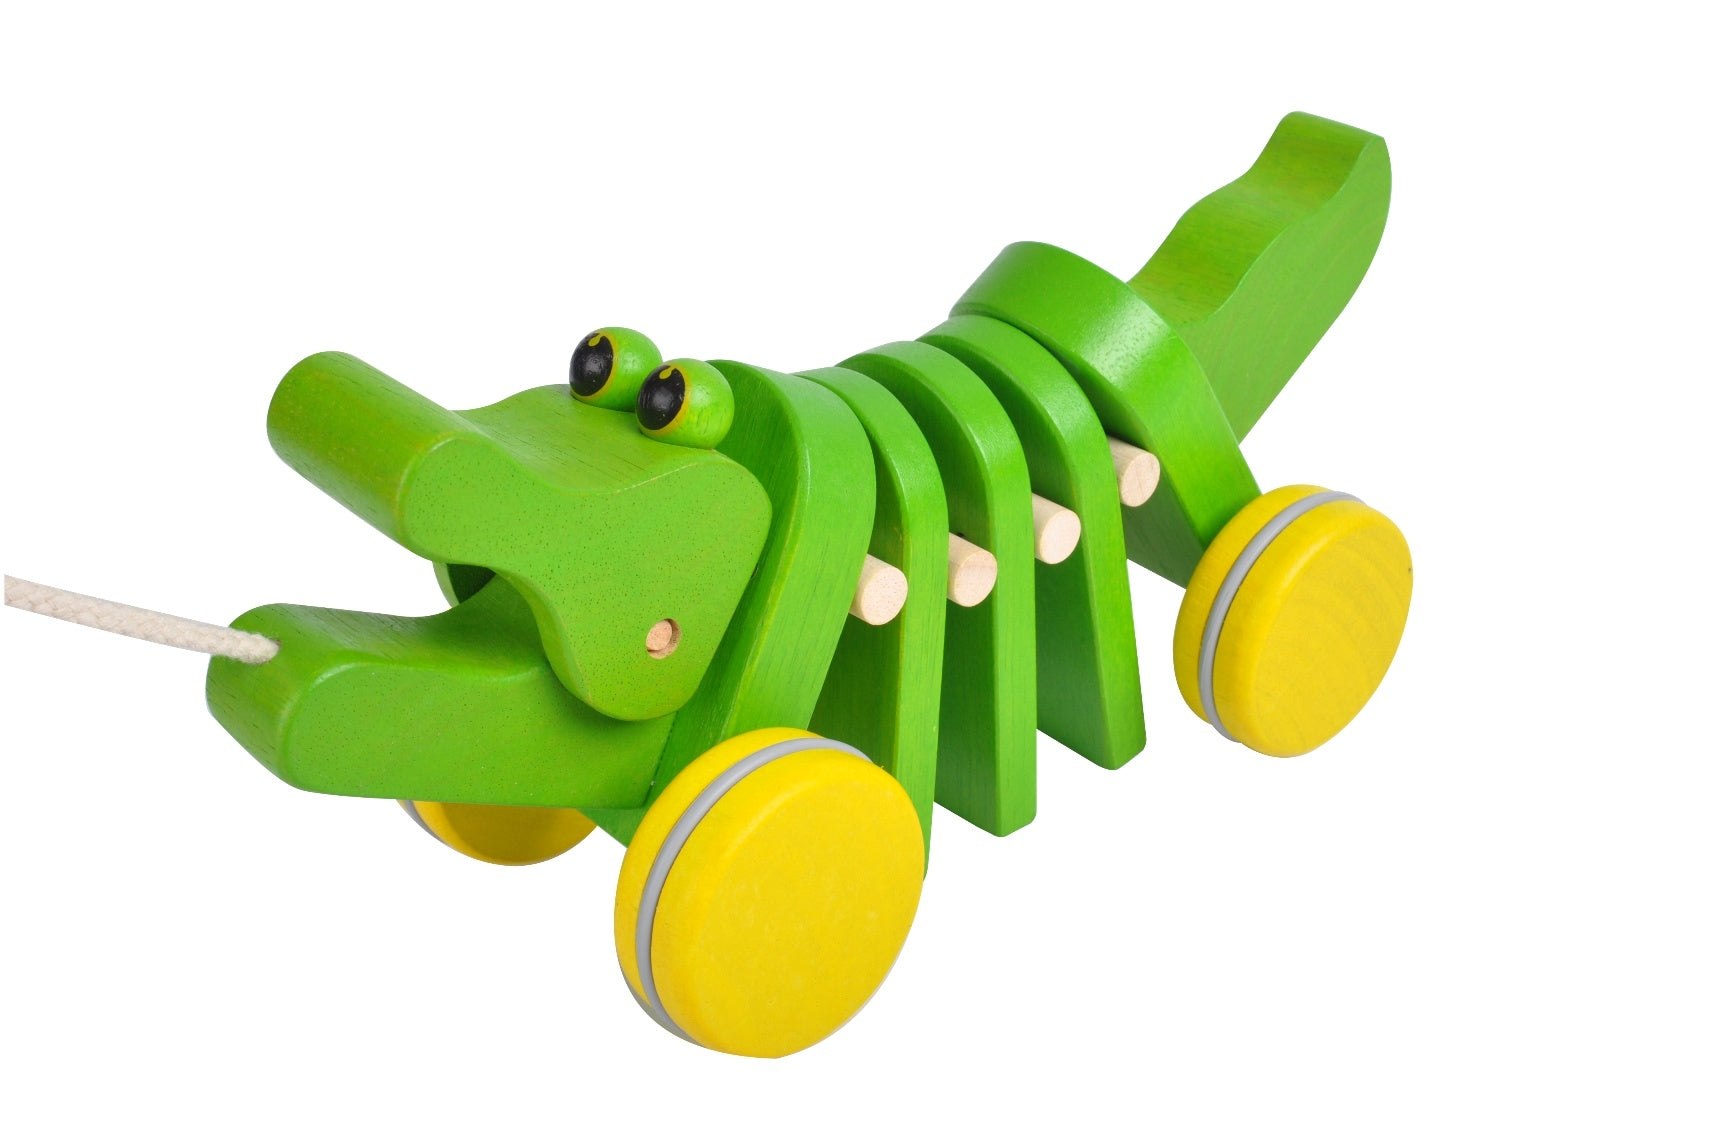 a green wooden alligator pull toy with wooden accordian sections in the middle, yellow wheels and a white string on a white background